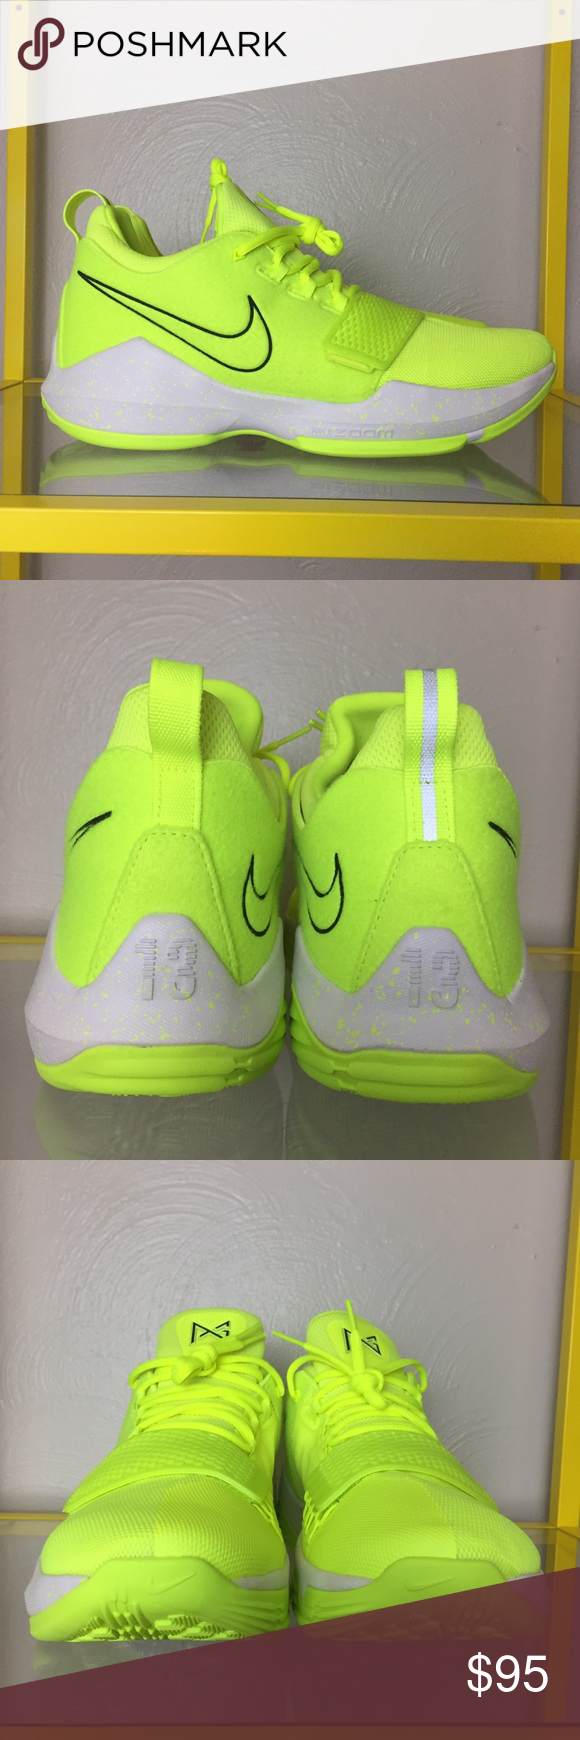 3d2479414d3 Nike PG 1 Tennis Ball Shoes Men s 11 NWB PG1 Volt Nike PG 1 Paul George